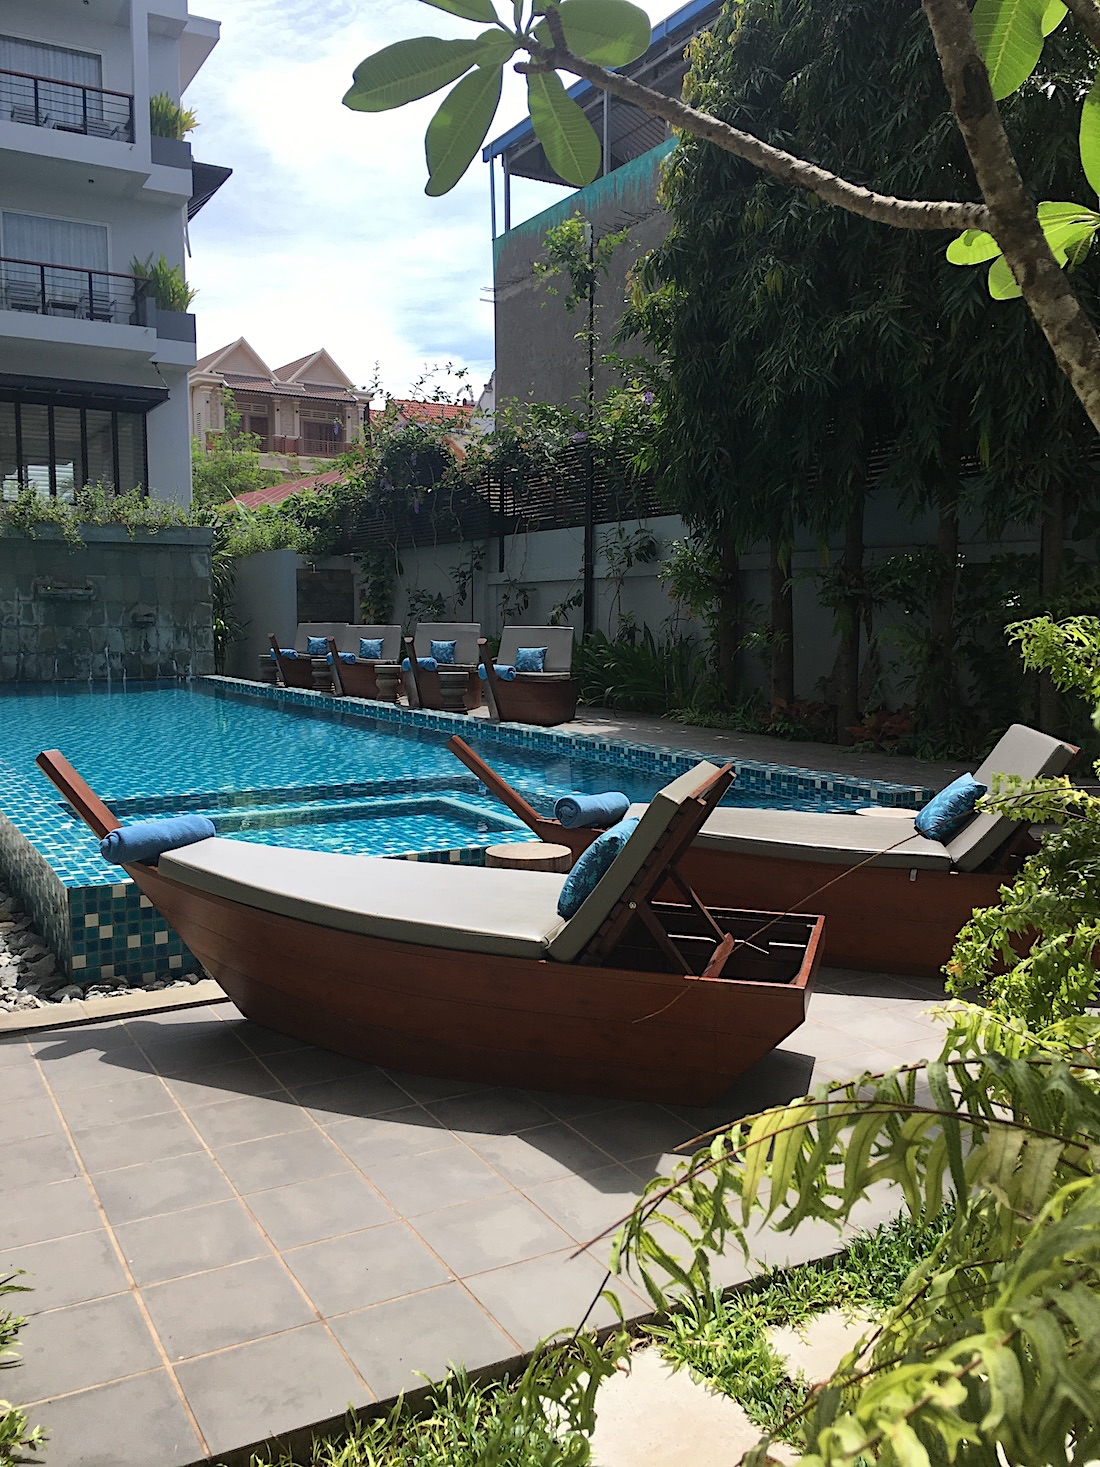 Siem Reap Hotel where to stay in Cambodia - www.flightofspice.com